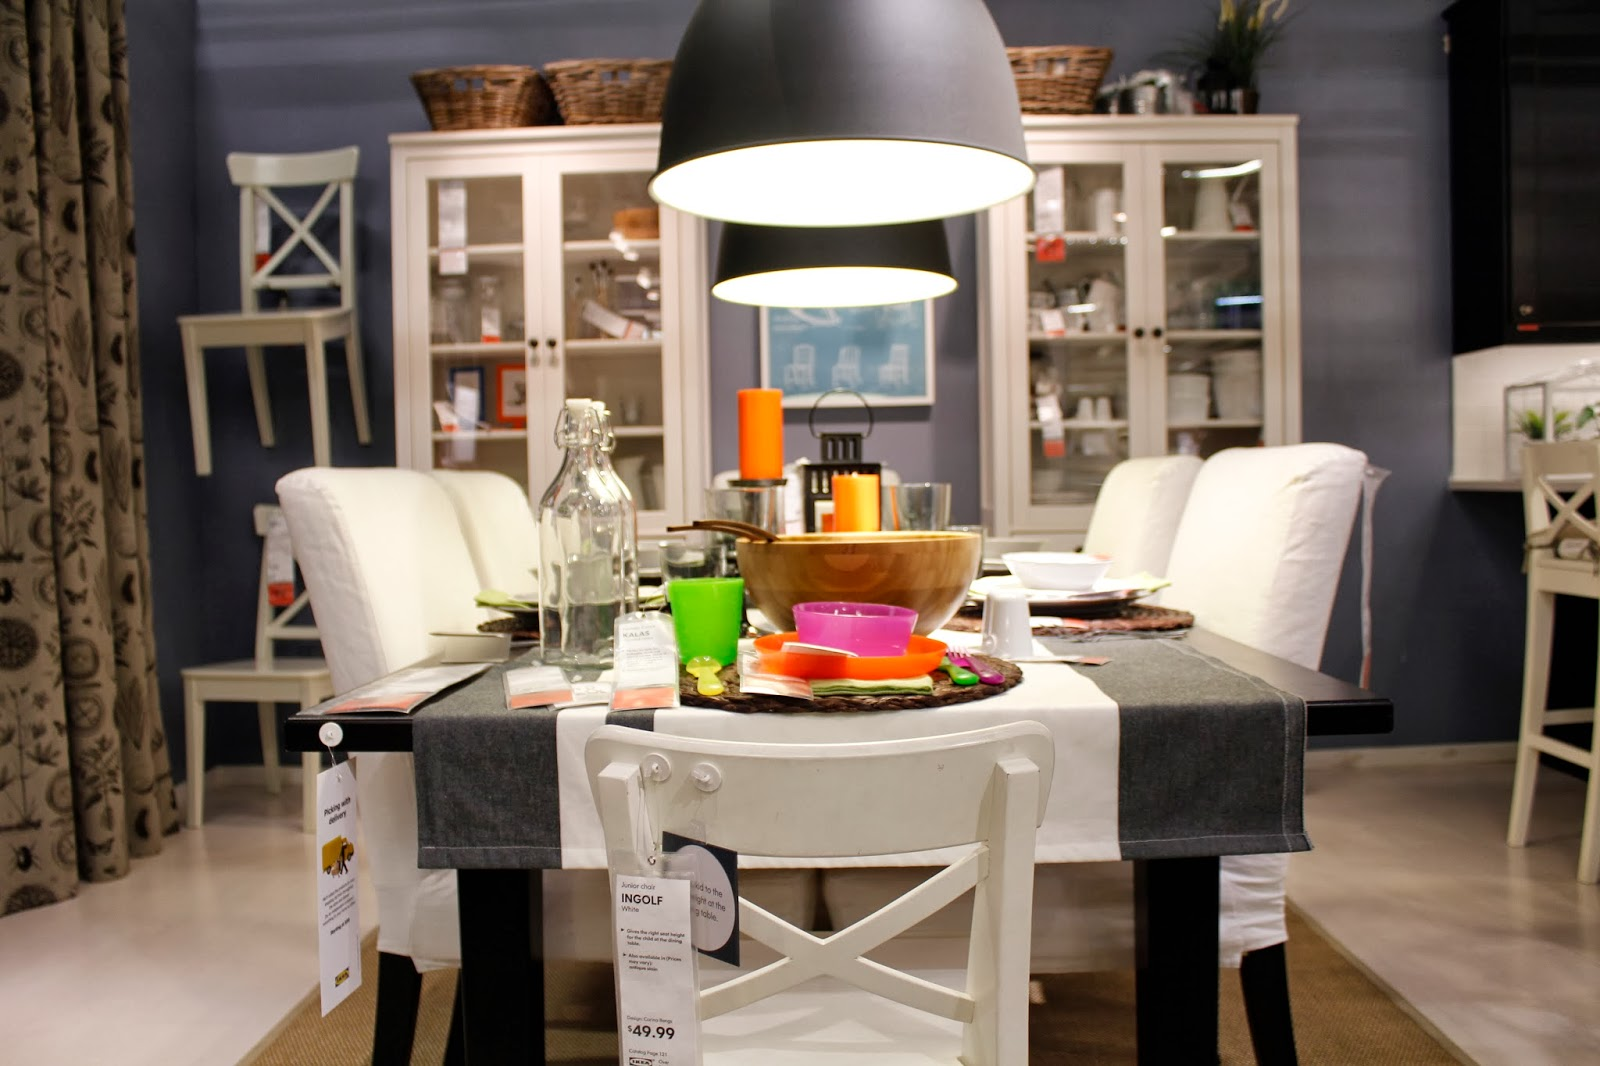 San jose food blog decorating for a dinner party with for Www ikea com palo alto